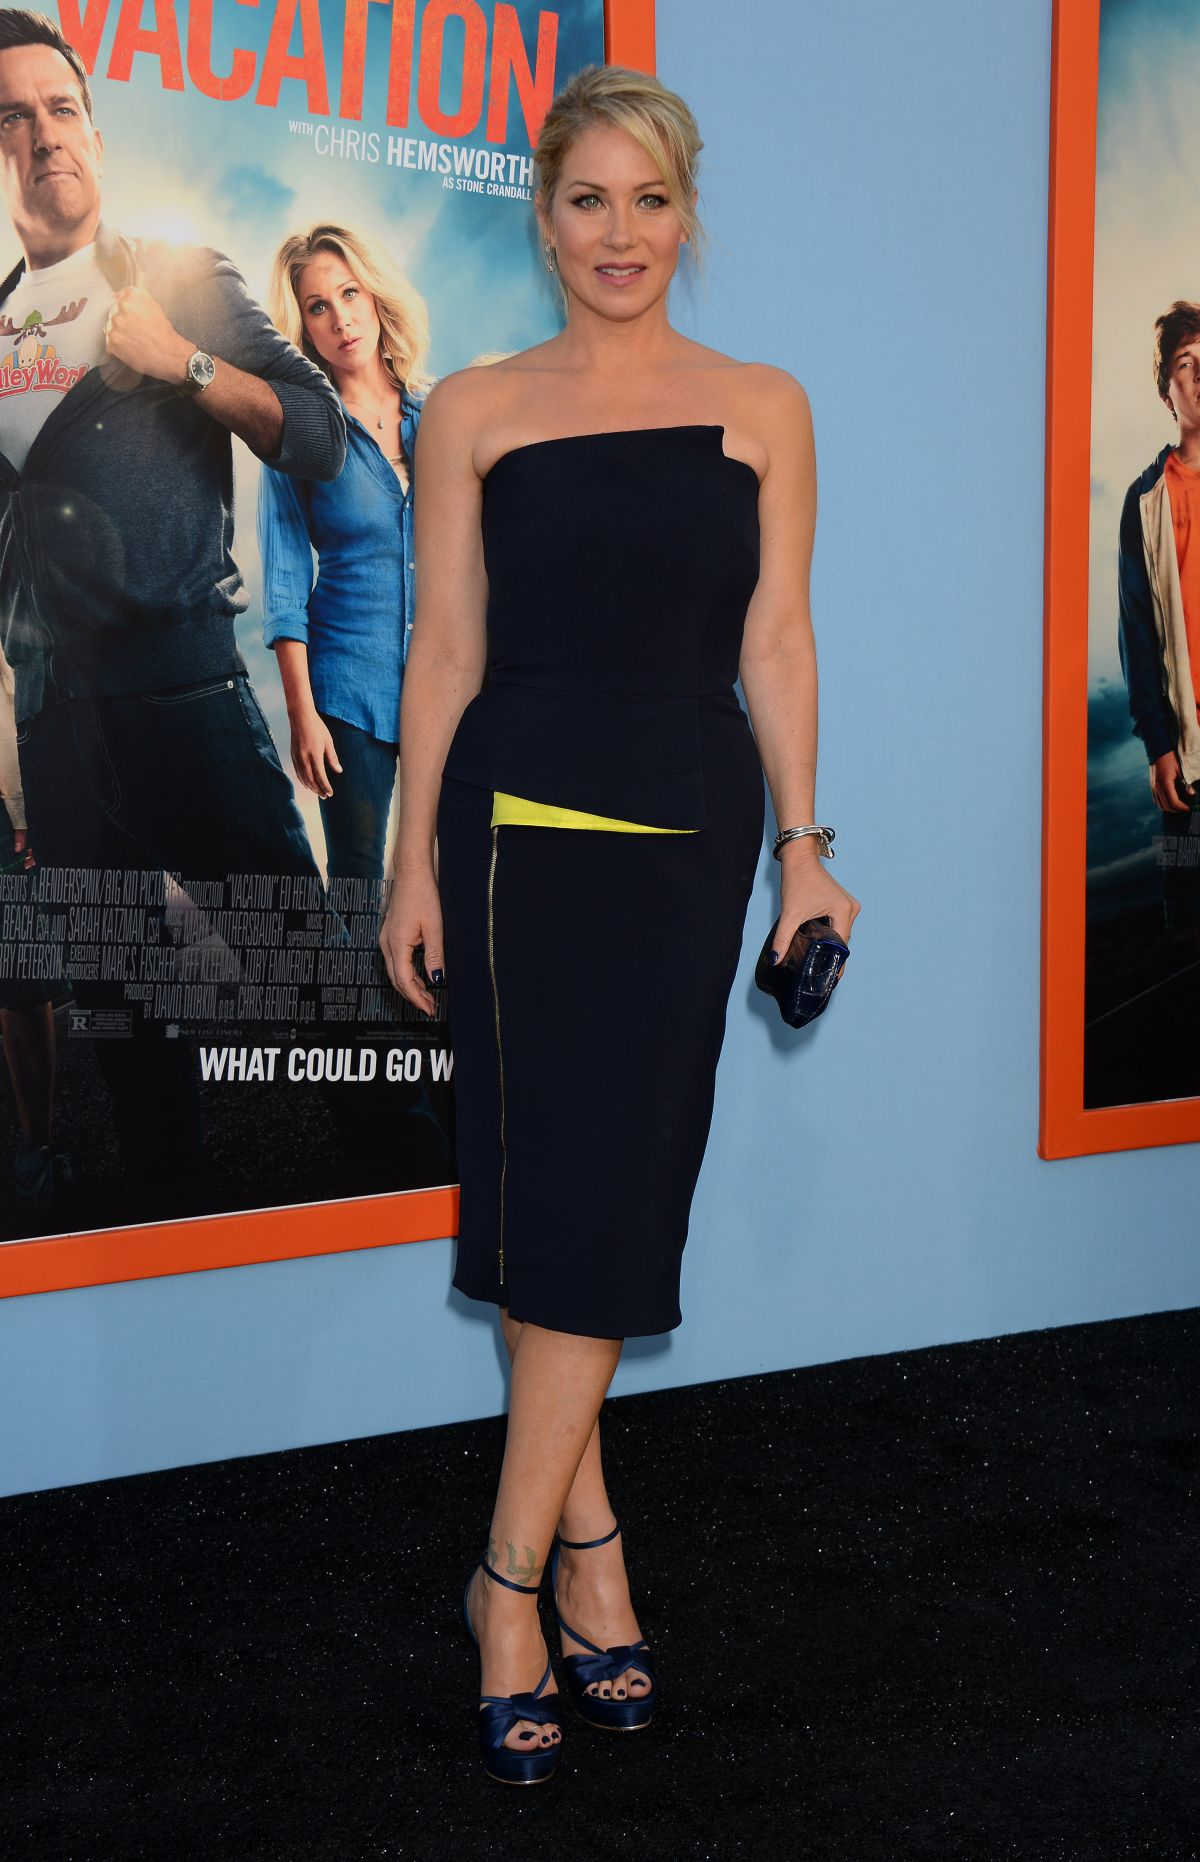 CHRISTINA APPLEGATE at Vacation Premiere in Westwood